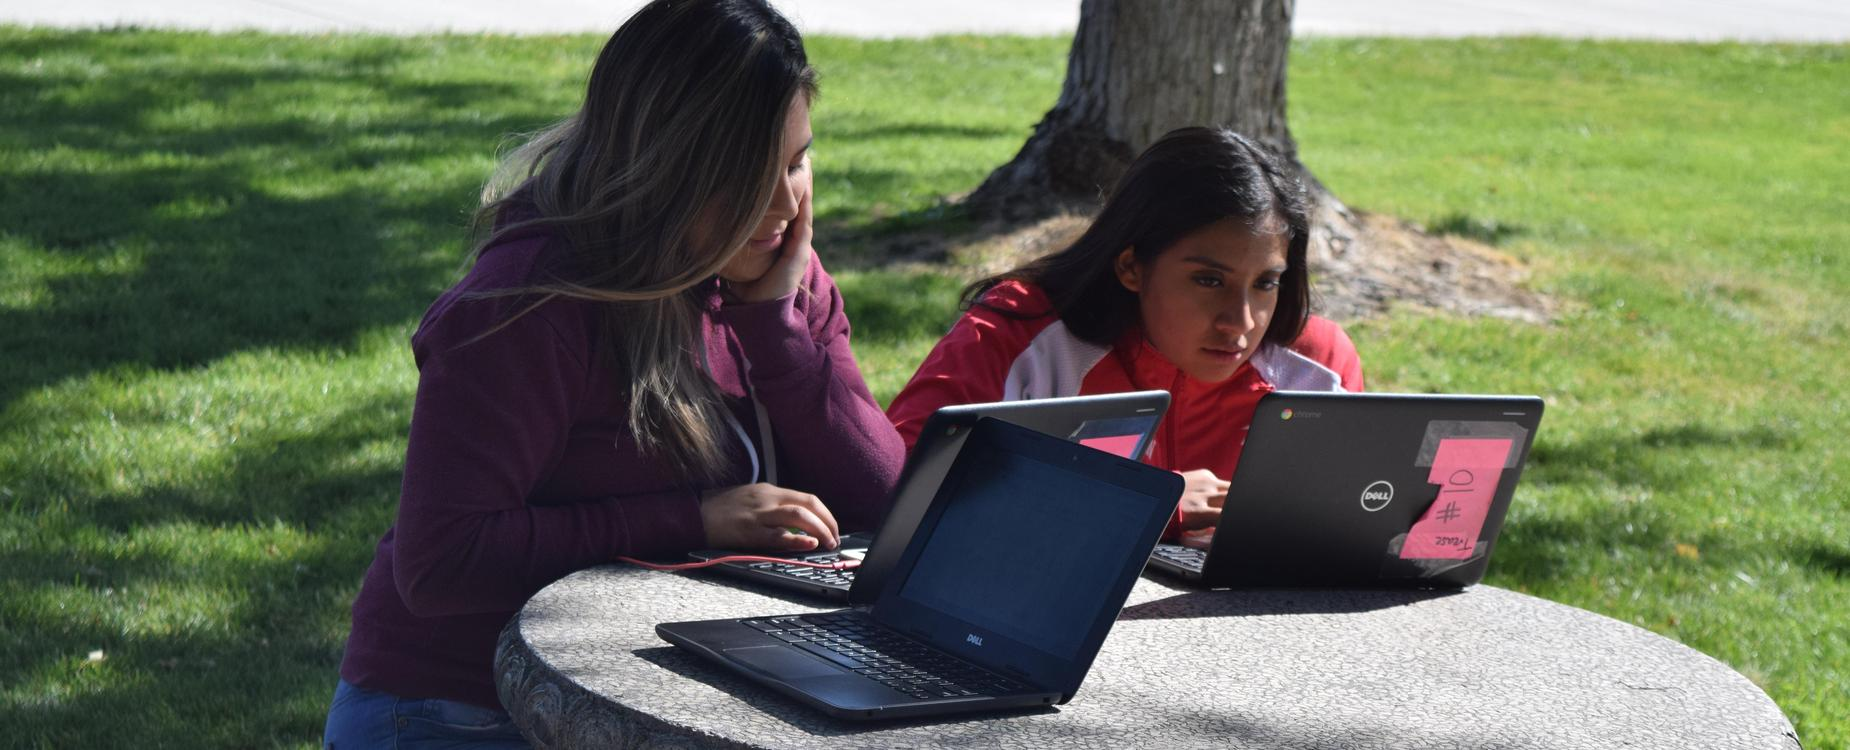 Students working on chromebooks outside